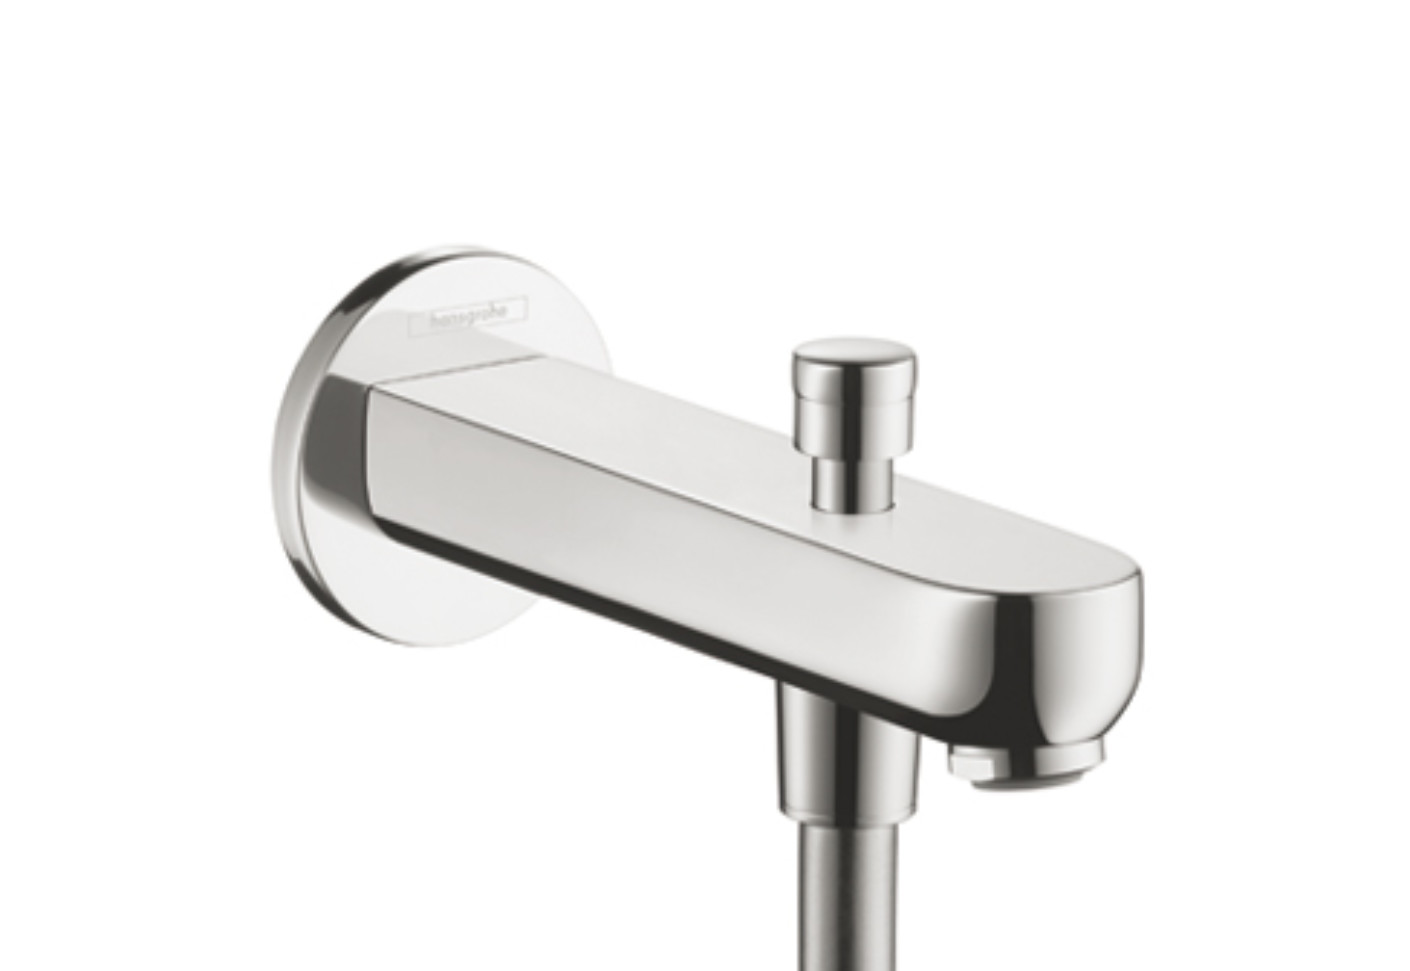 Metris S Bath Filler 152mm with Diverter by Hansgrohe | STYLEPARK